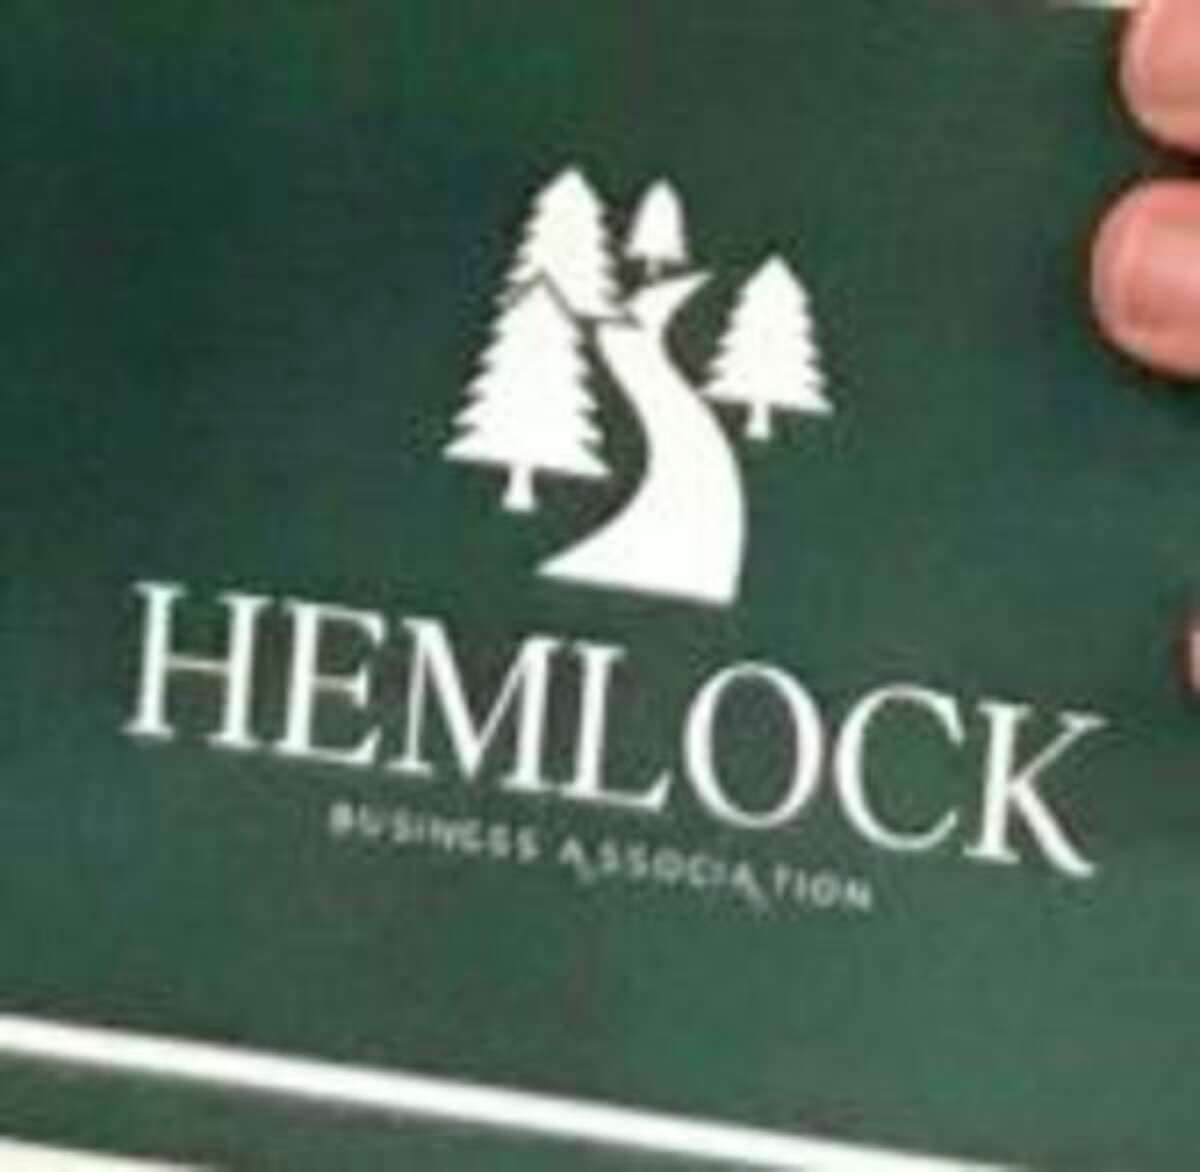 The Hemlock Business Association selectedthis newlogo submitted by Coryn Boyke, a Hemlock High School student. (Photo provided)